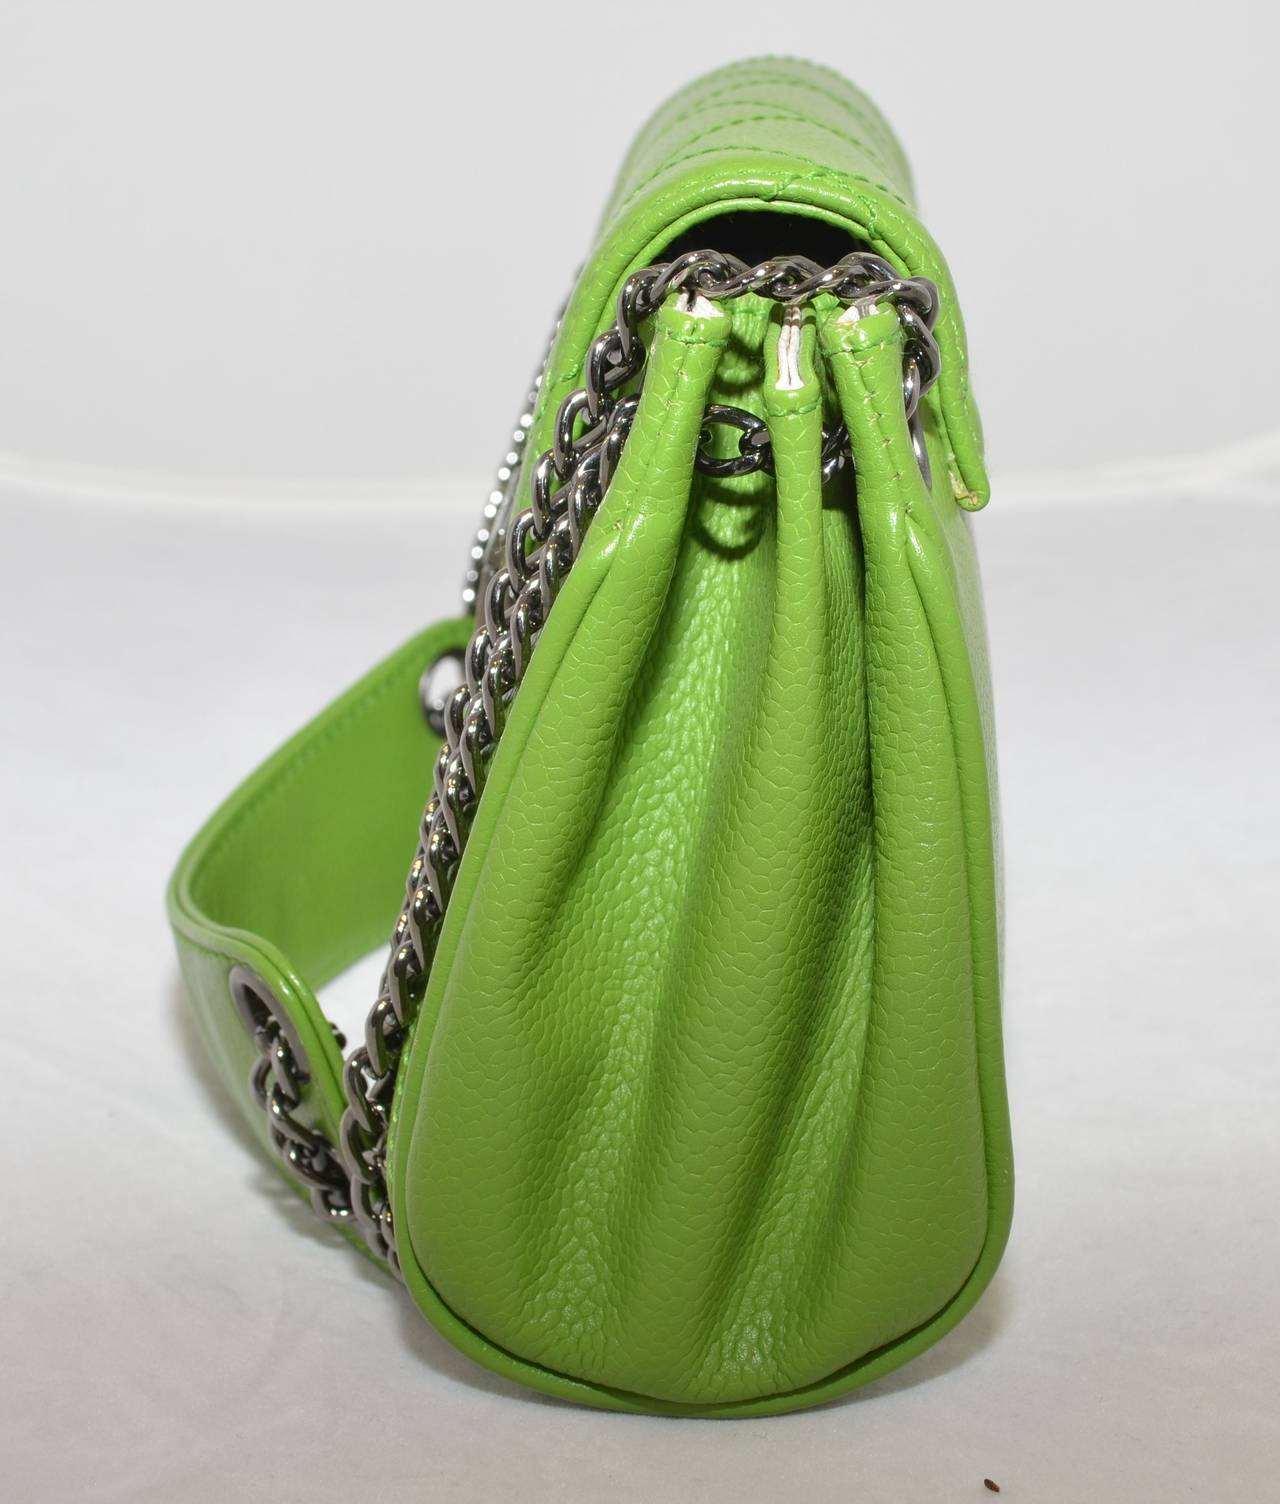 Chanel 2003-2004 Green Caviar Mini Quilted Chain Shoulder Bag In Excellent Condition For Sale In Carmel by the Sea, CA